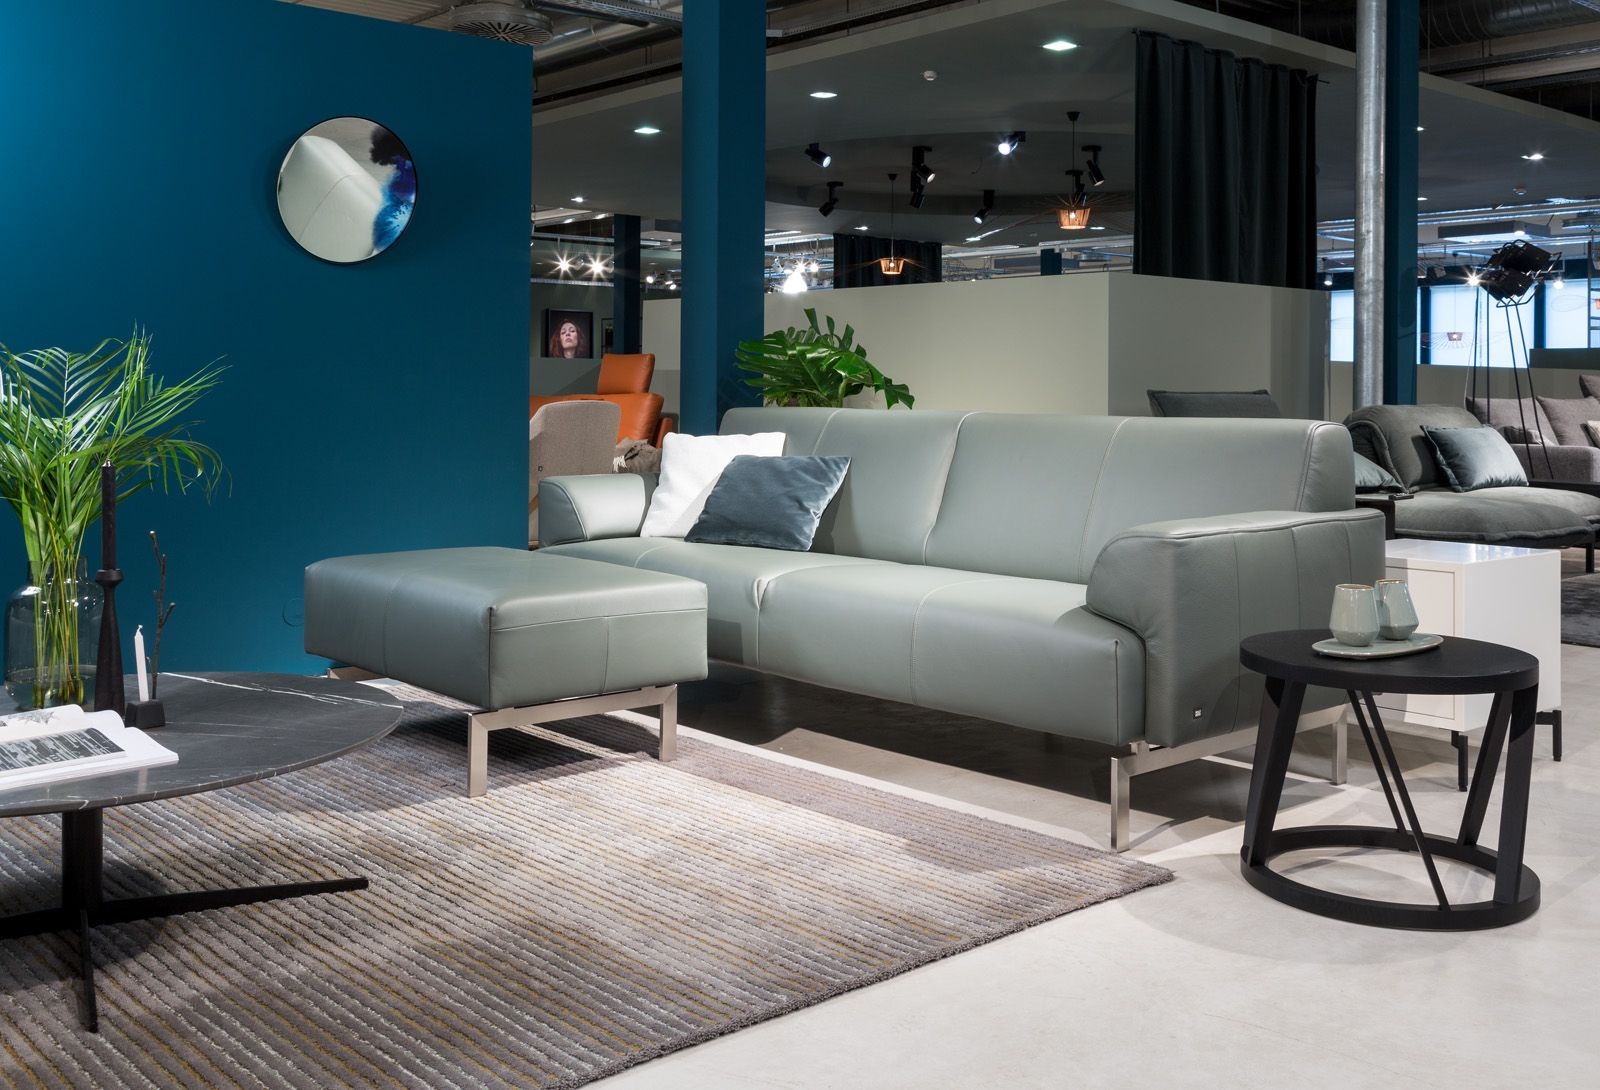 Rolf Benz Sofa Ecksofa The Rolf Benz 310 Will Simply Amaze Each And Every Purist With Its